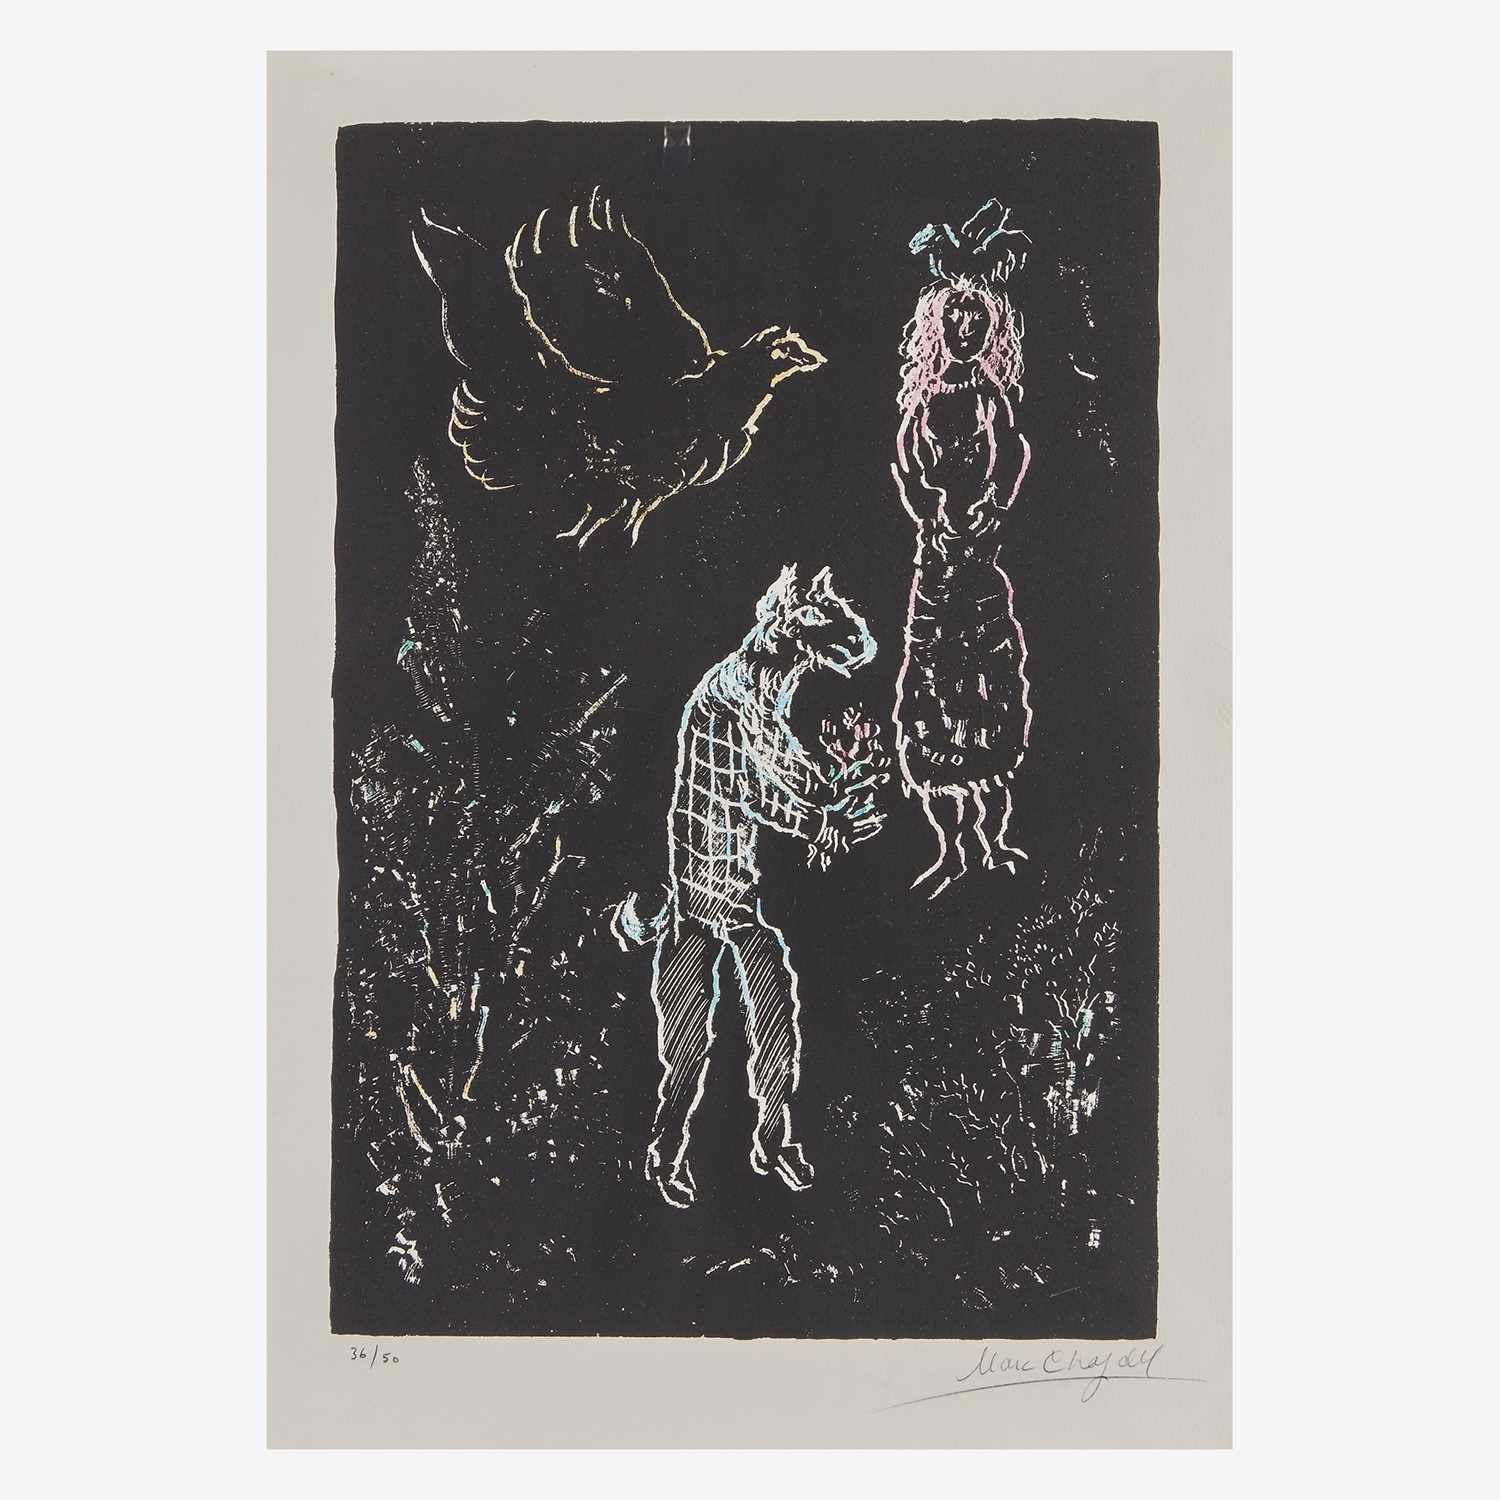 Lot 2 - Marc Chagall (French/Russian, 1887-1985)